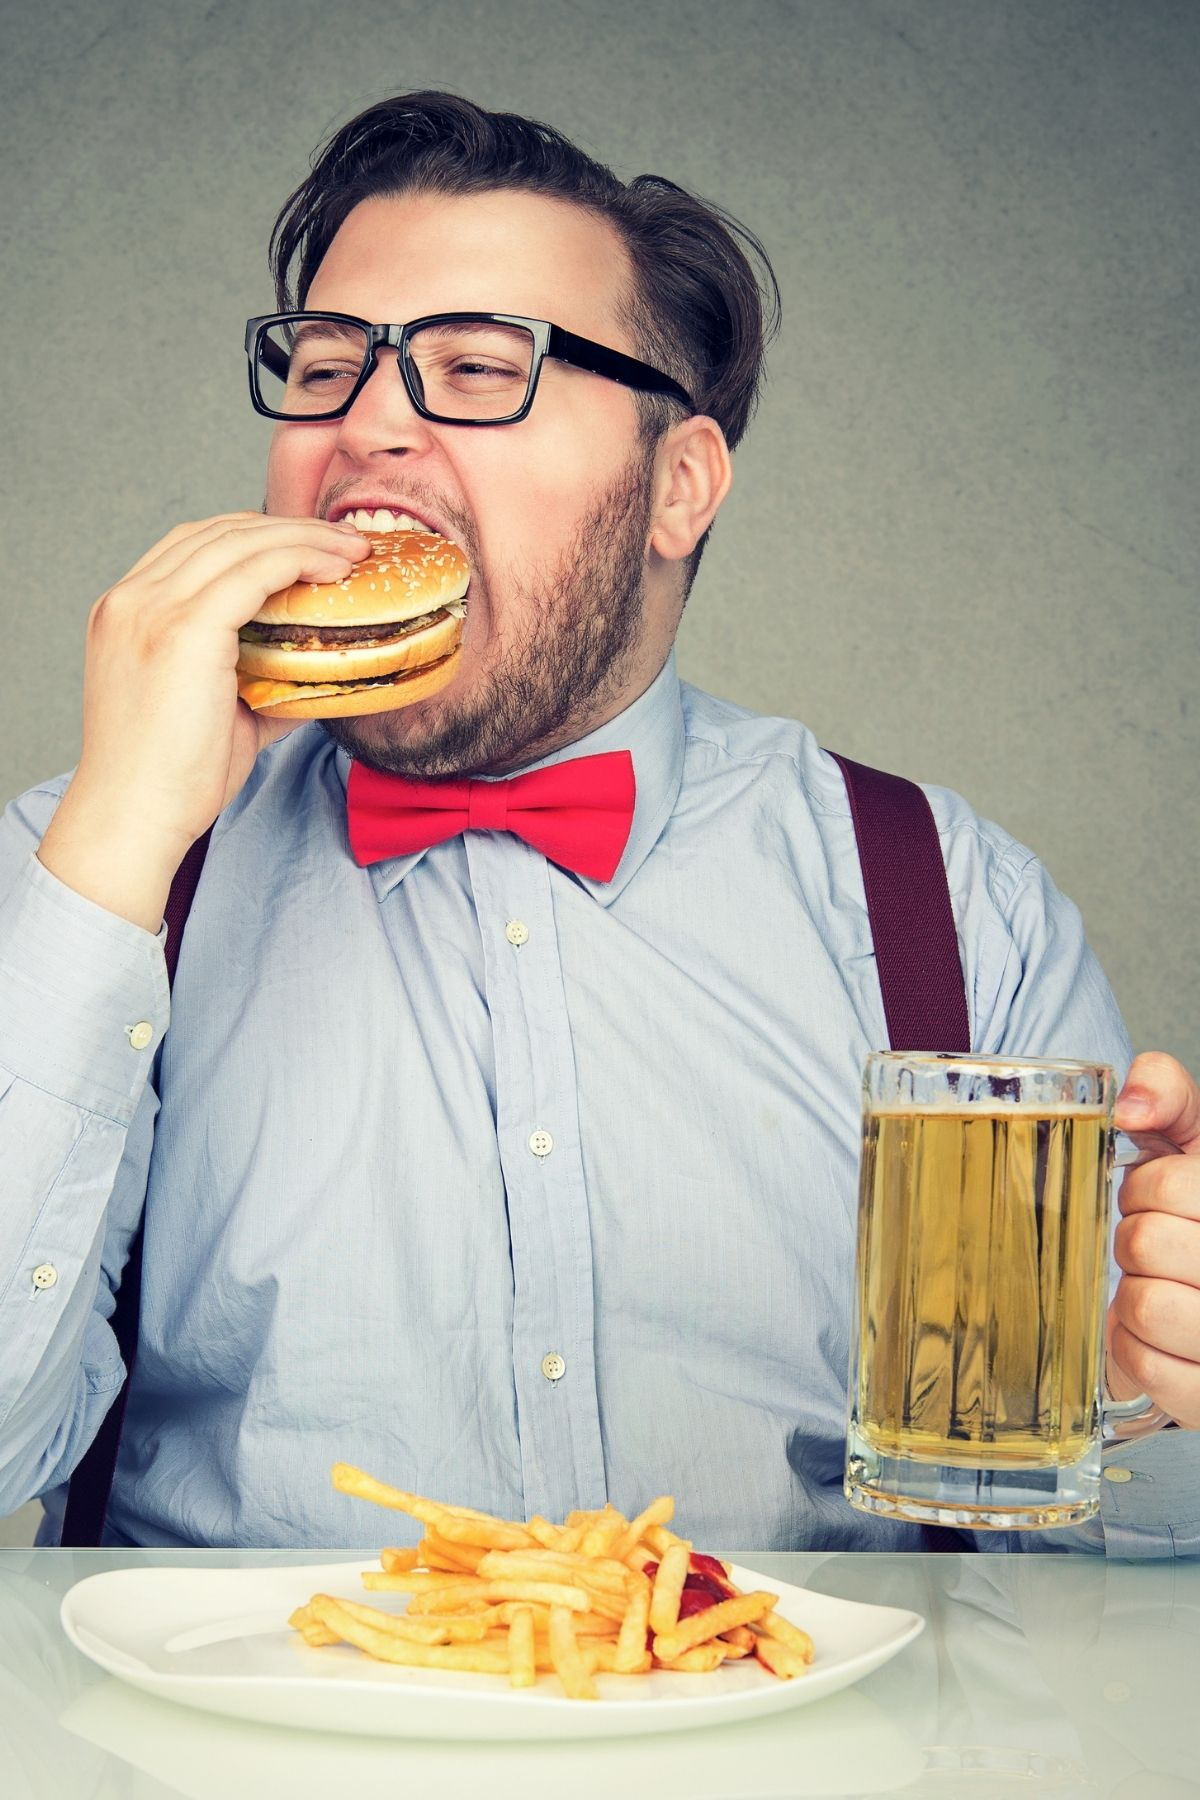 Man wearing glasses stuffs a hamburger in mouth with beer in hand and fries on table.